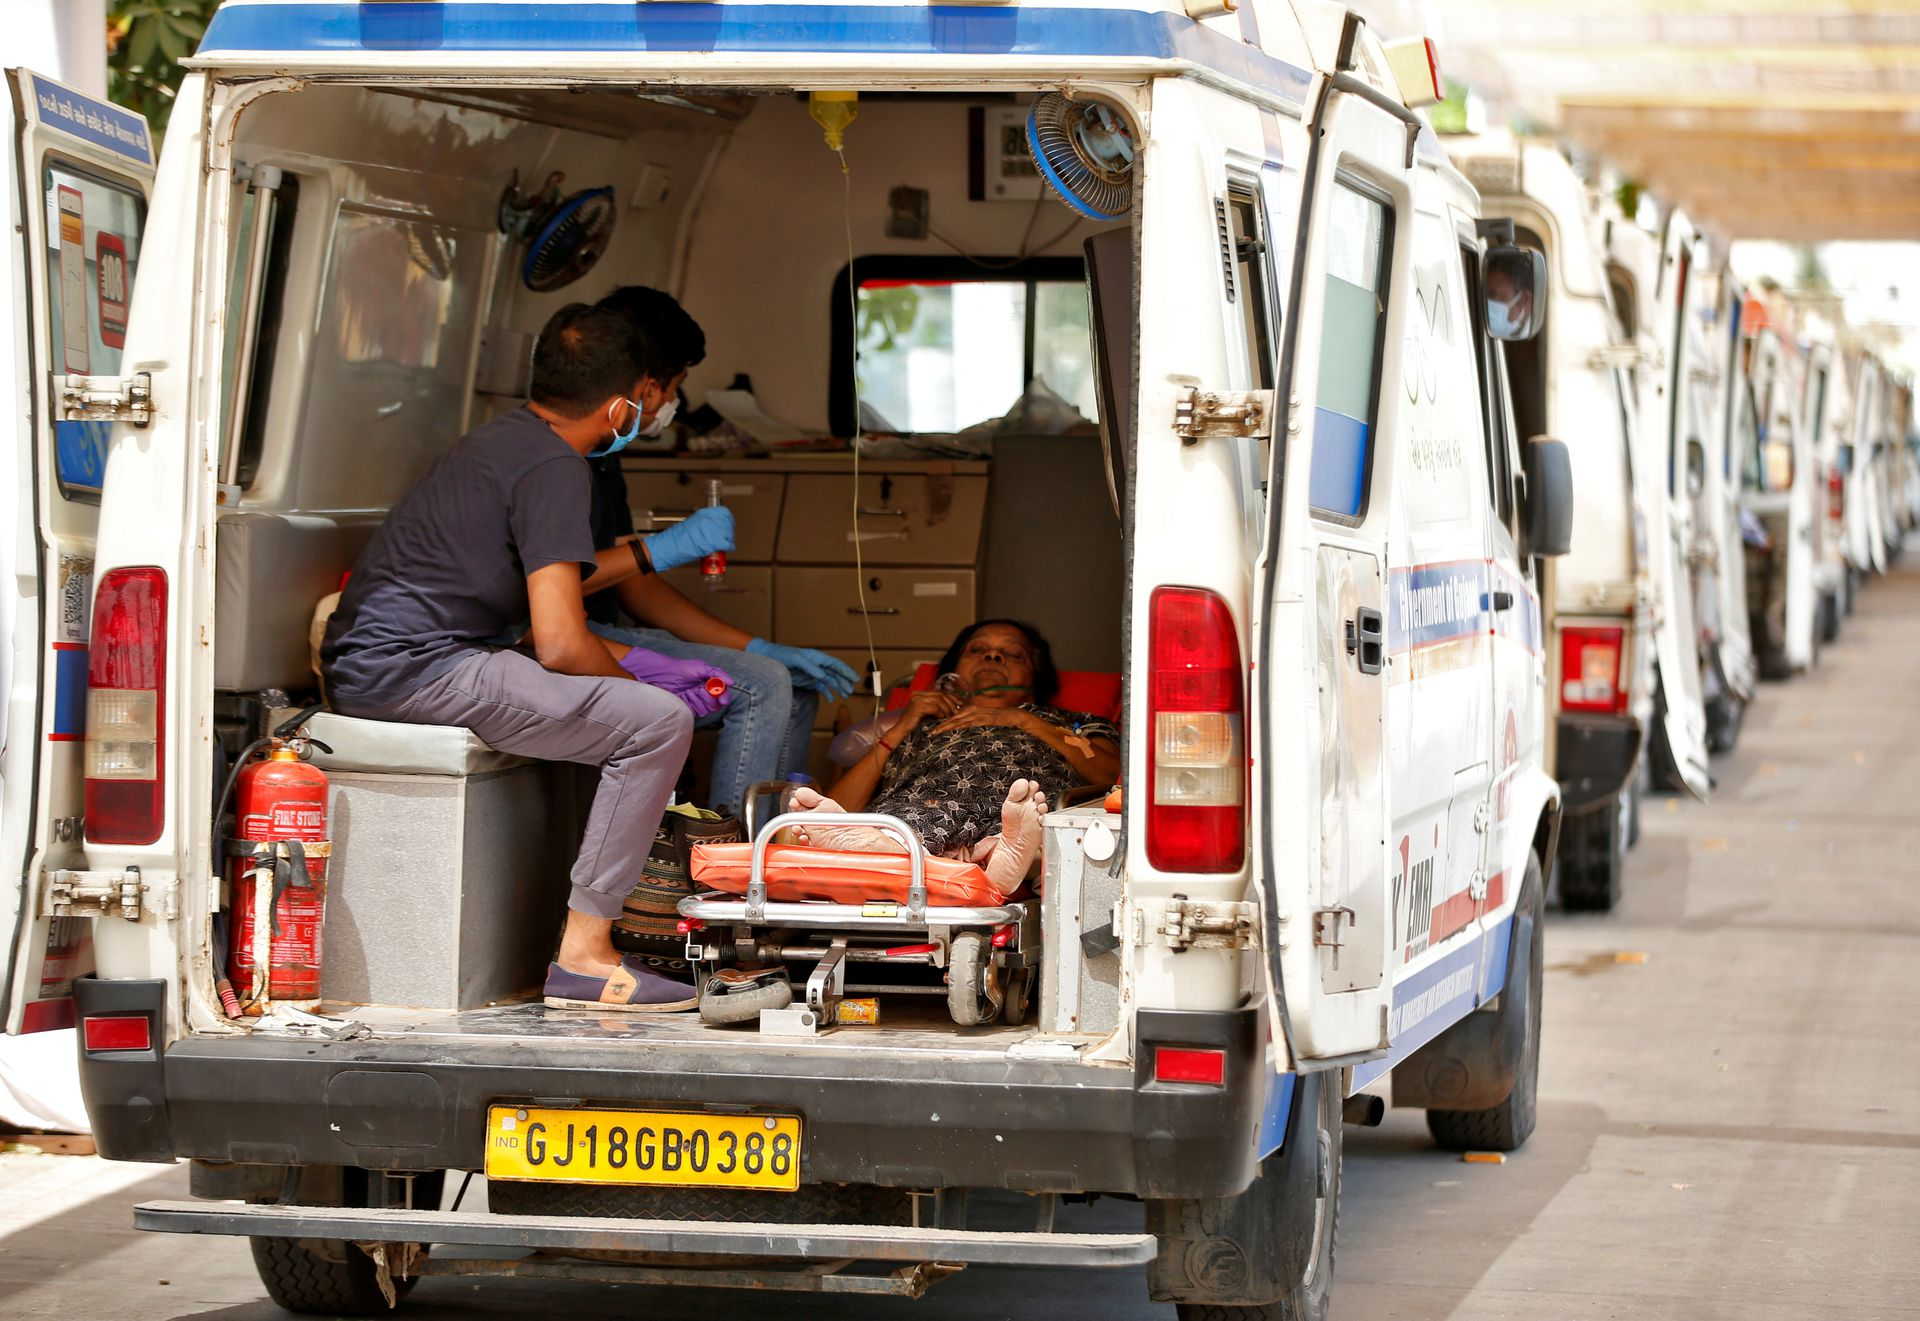 A woman with breathing problem waits inside an ambulance for her turn to enter a COVID-19 hospital for treatment, amidst the spread of the coronavirus disease (COVID-19) in Ahmedabad, India, April 28, 2021. Photo: Reuters